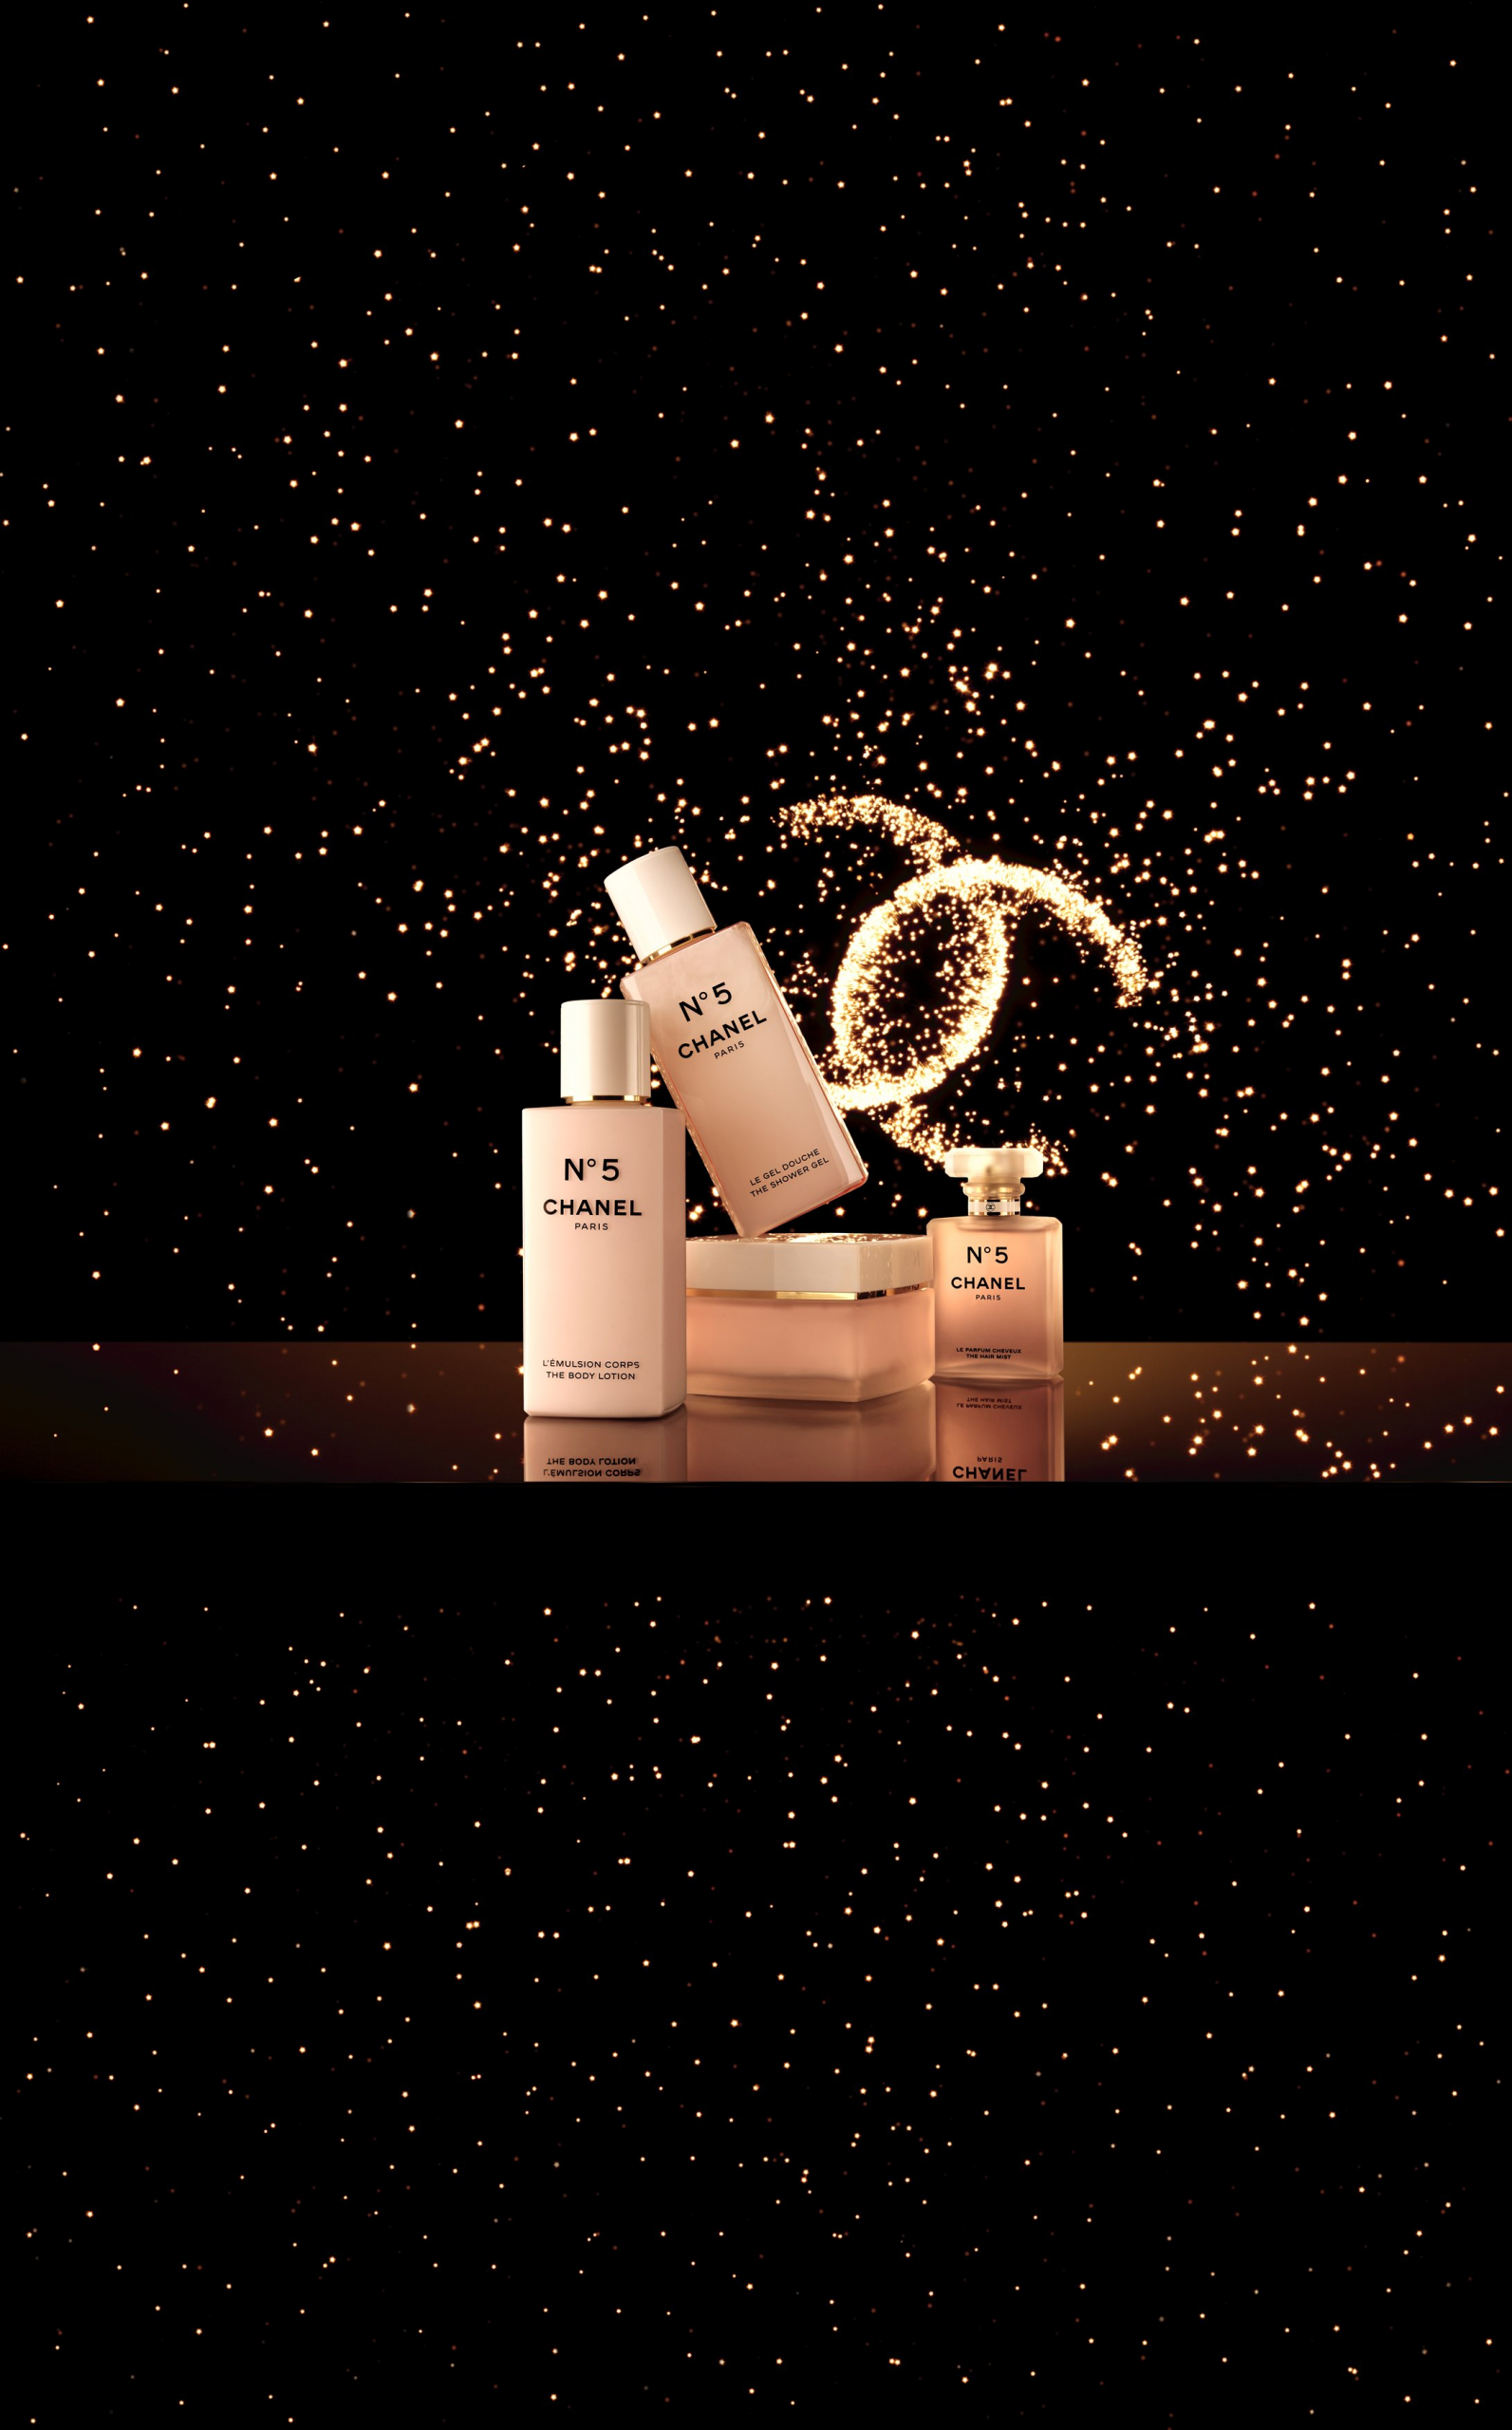 chanel n°5 holidays